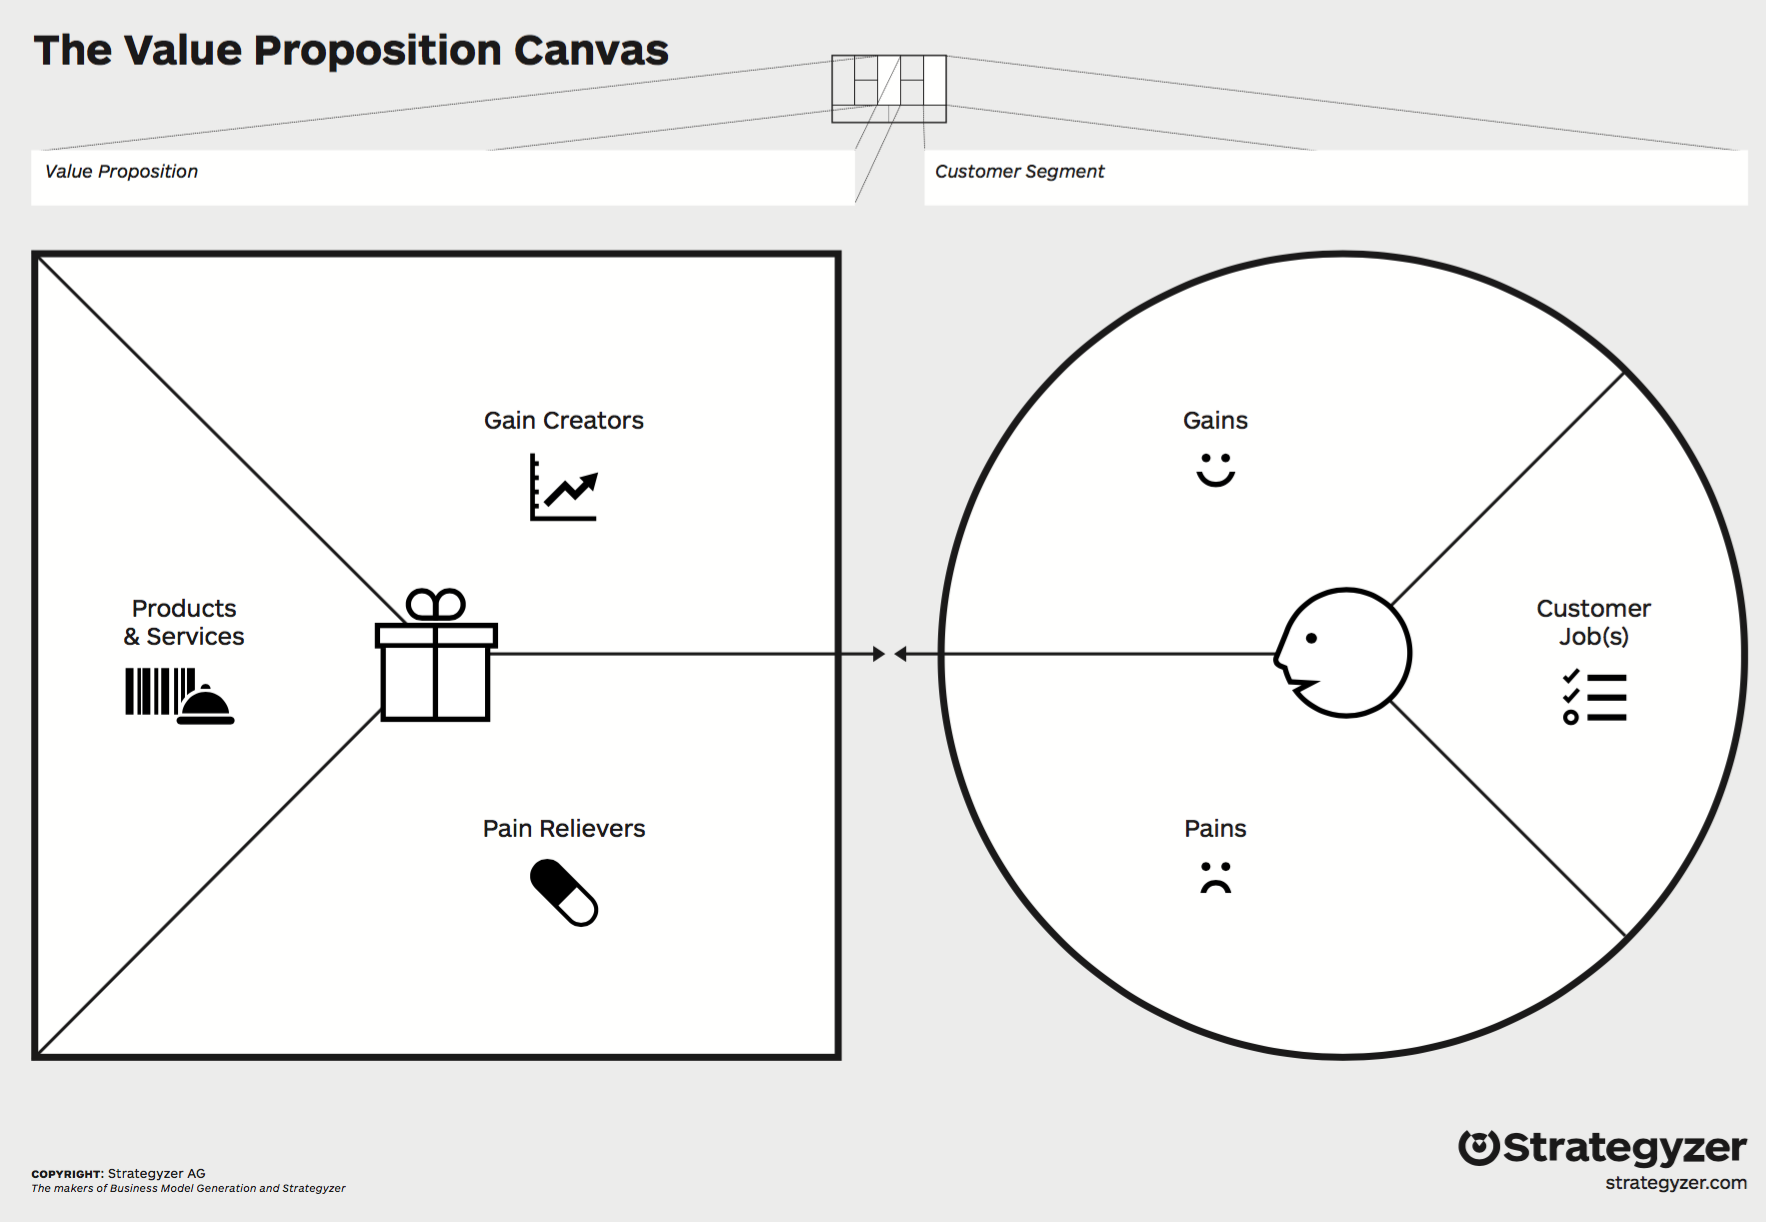 Alex Osterwalderin Value Proposition Canvas. Kuva sivustolta strategyzer.com.